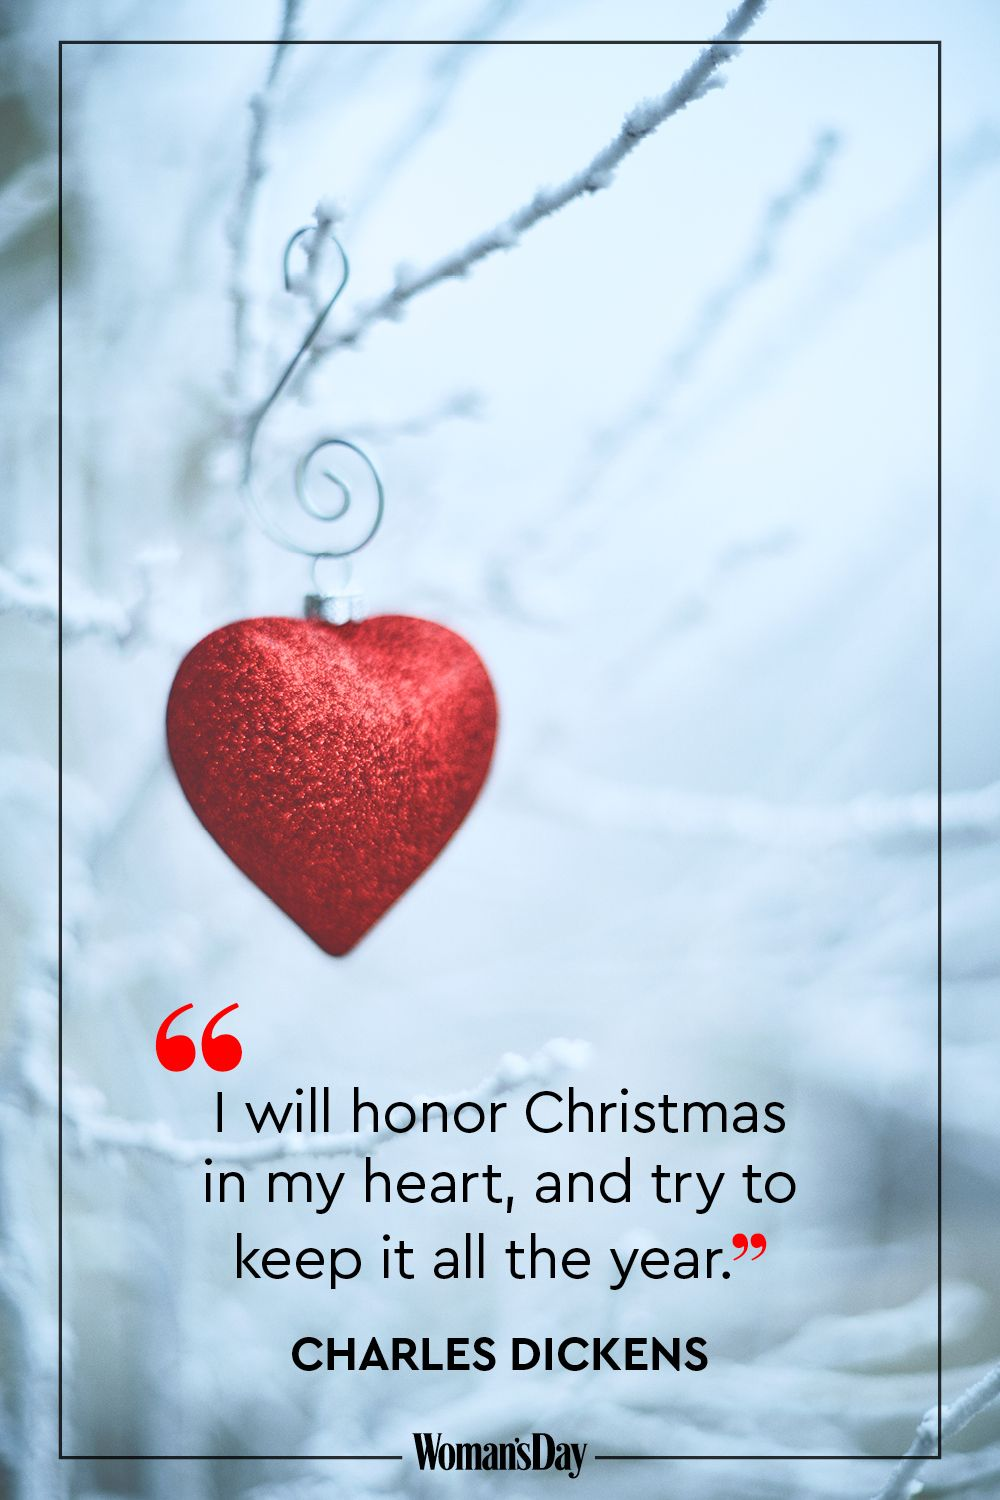 20 Christmas Quotes - Inspirational Christmas Quotes 2019